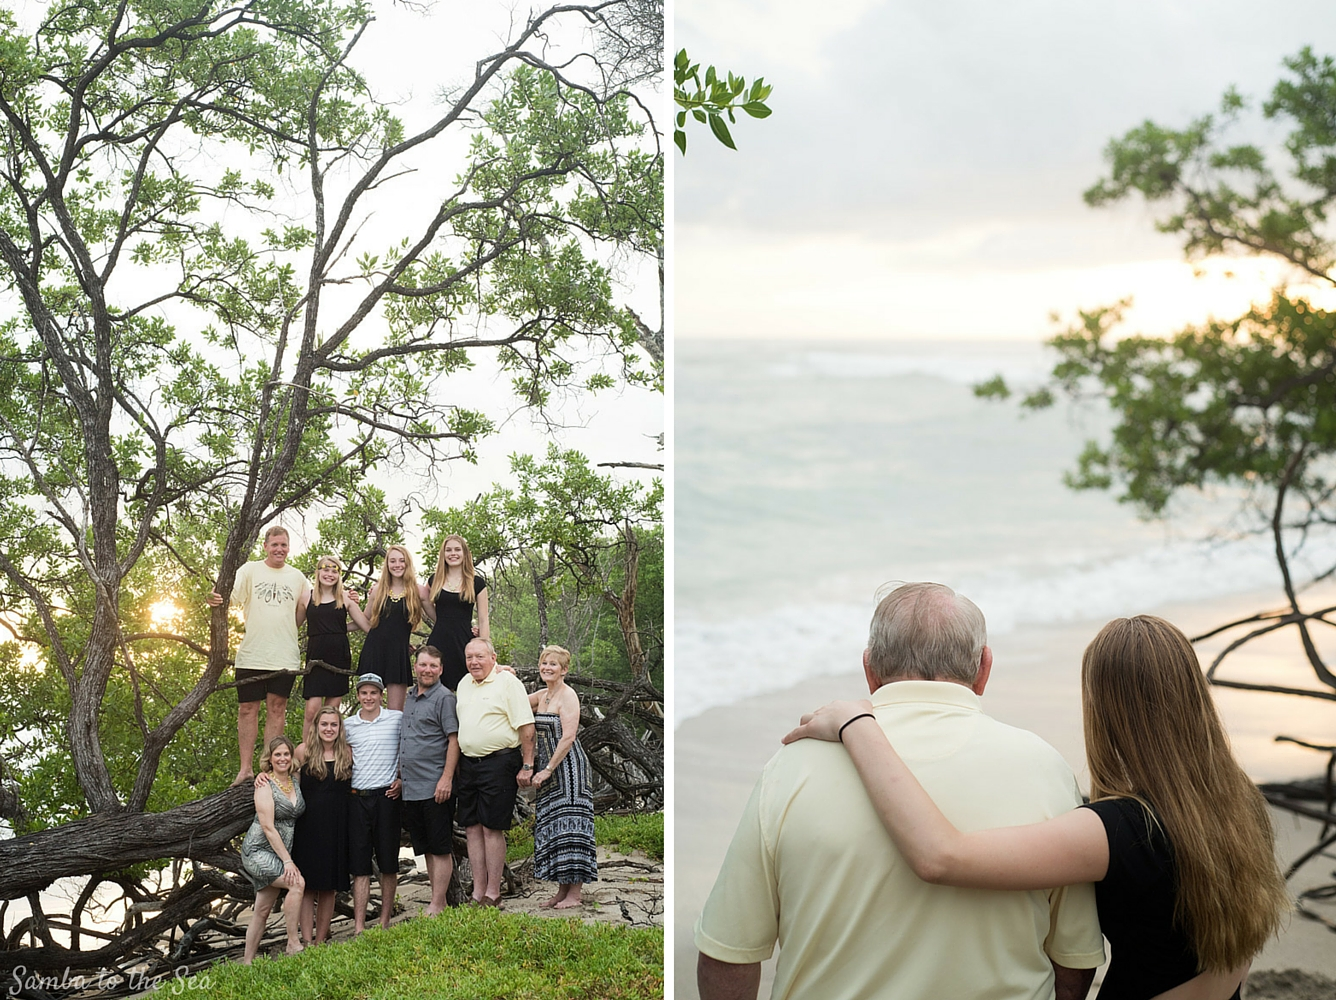 Family photos at Hacienda Pinilla in Costa Rica. Photographed by Kristen M. Brown, Samba to the Sea Photography.